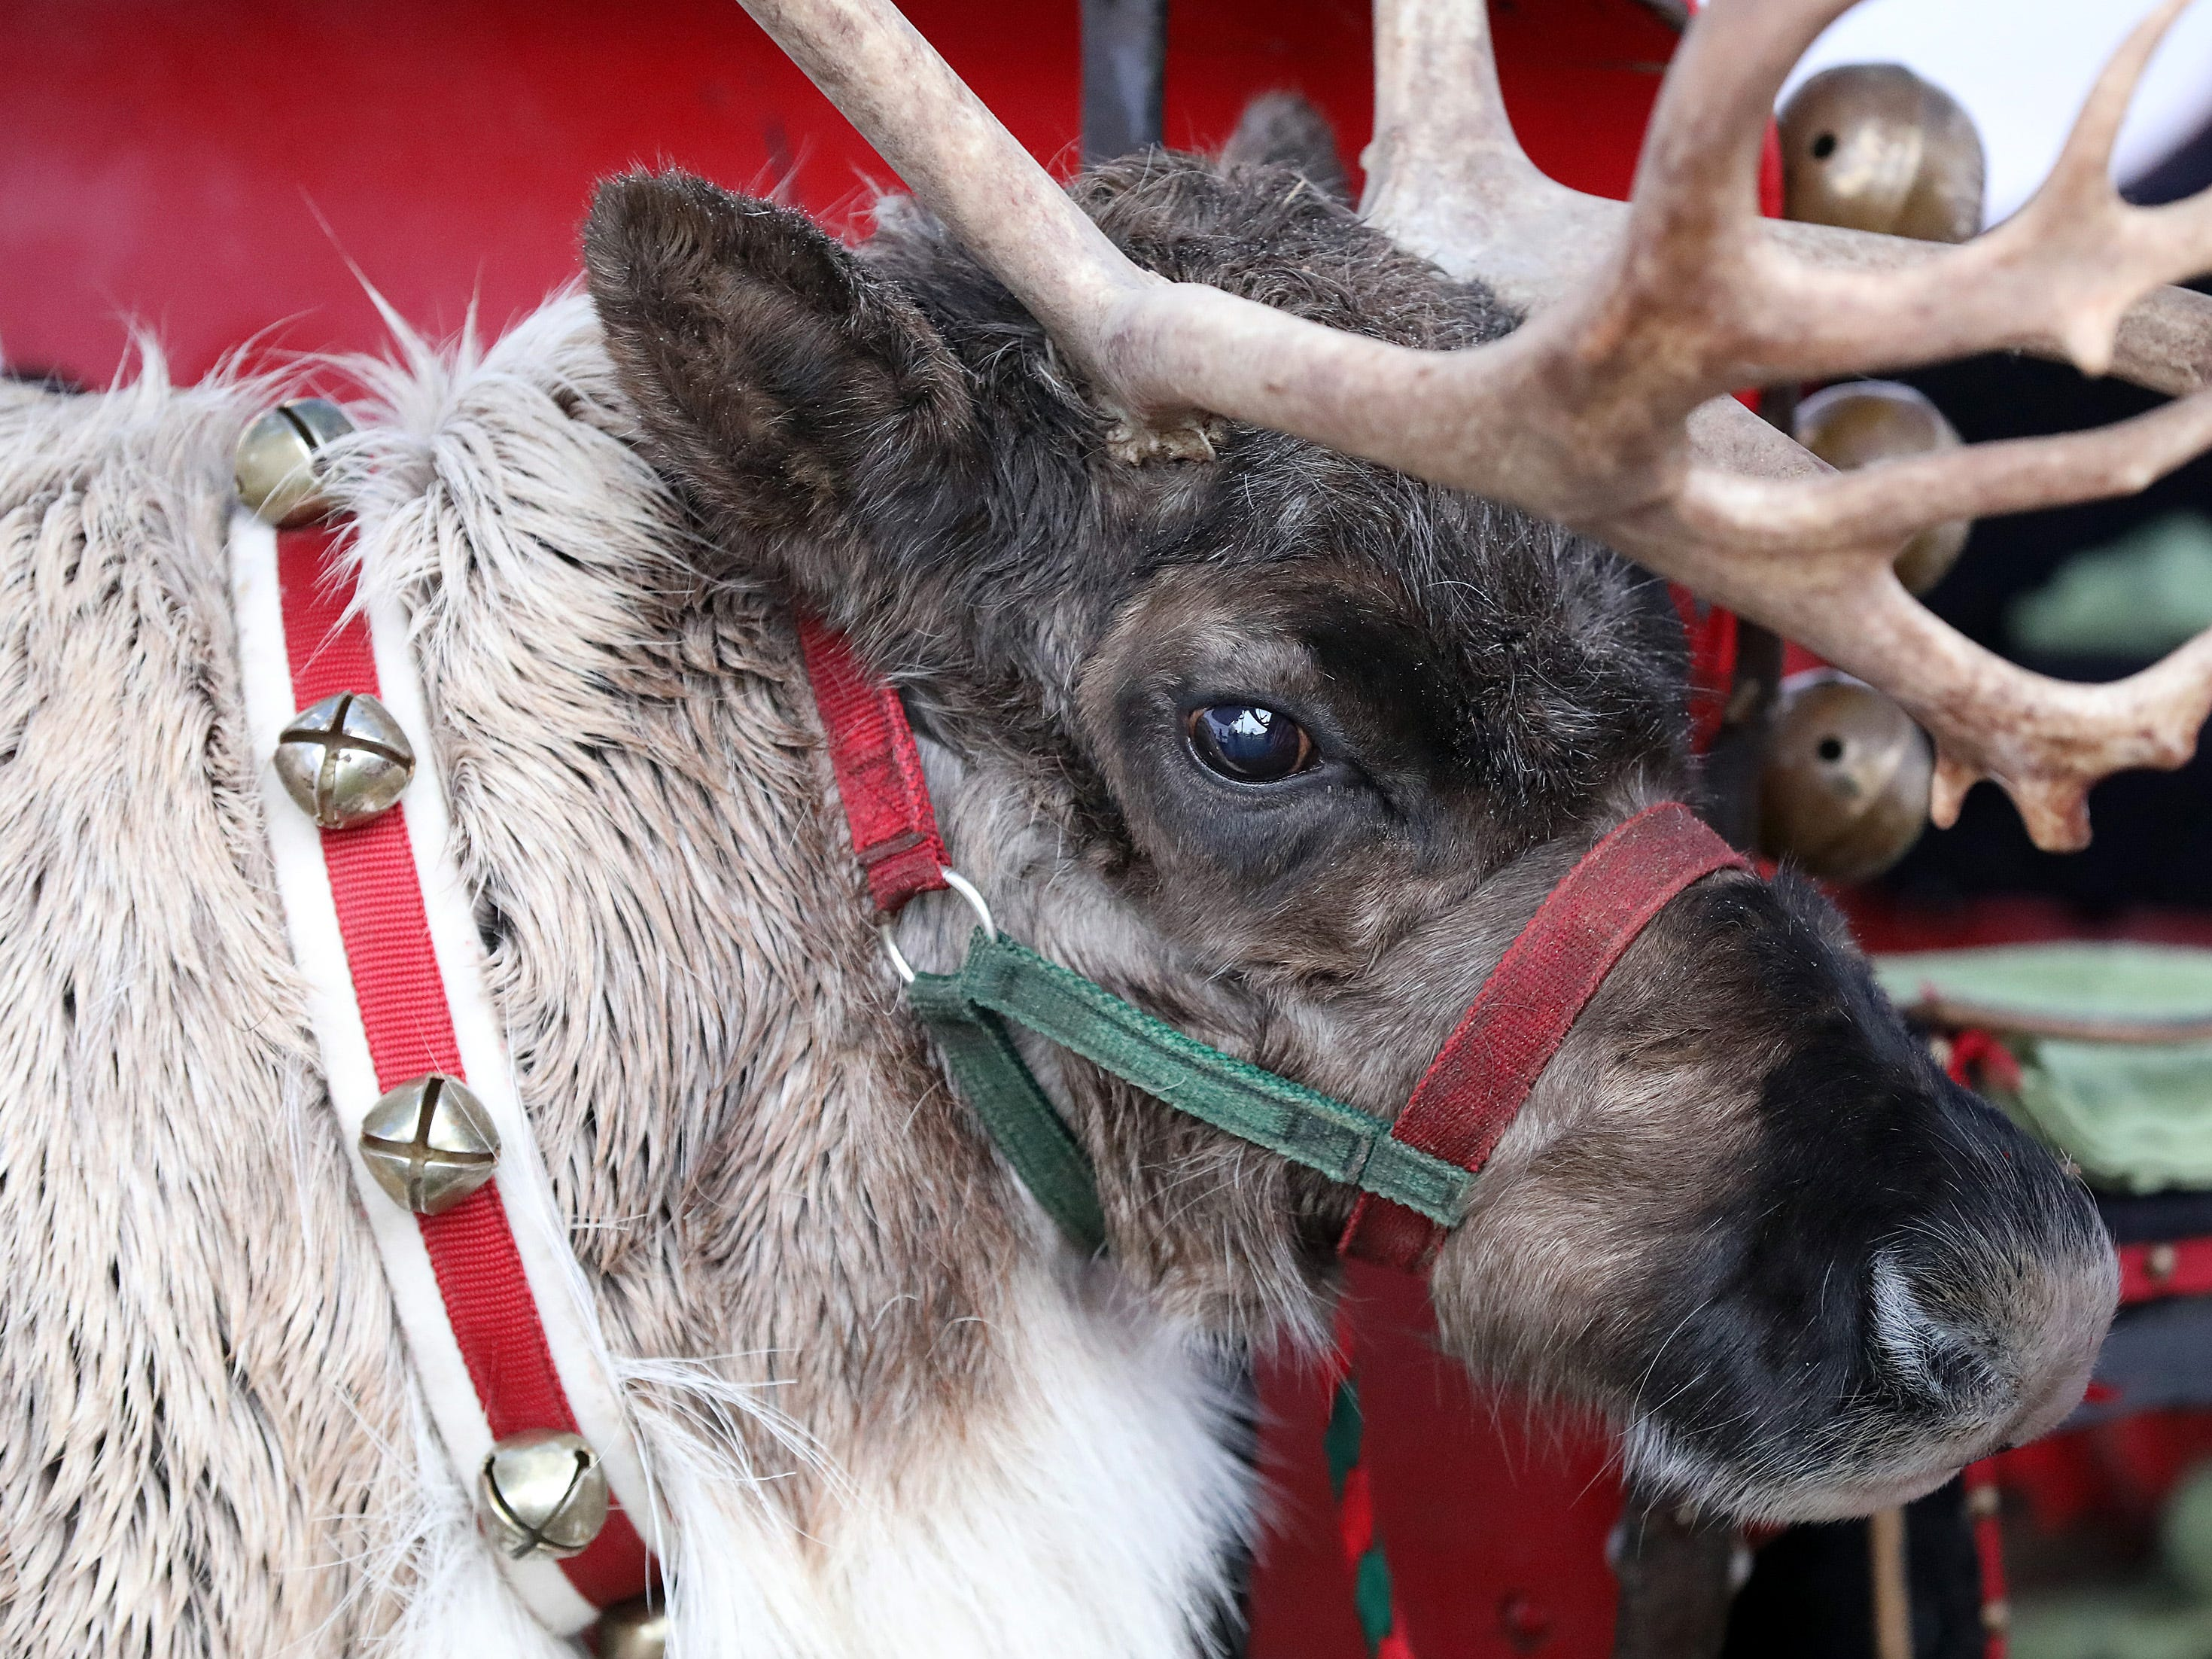 Rudy the Reindeer checks out all the humans attending UCAN's third annual Light Up Urbandale on Sunday, Dec. 2, 2018 at Lions Park in Urbandale. Holiday festivities included a visit from Santa, crafts, goodies, official tree lighting ceremony, live reindeer and entertainment.